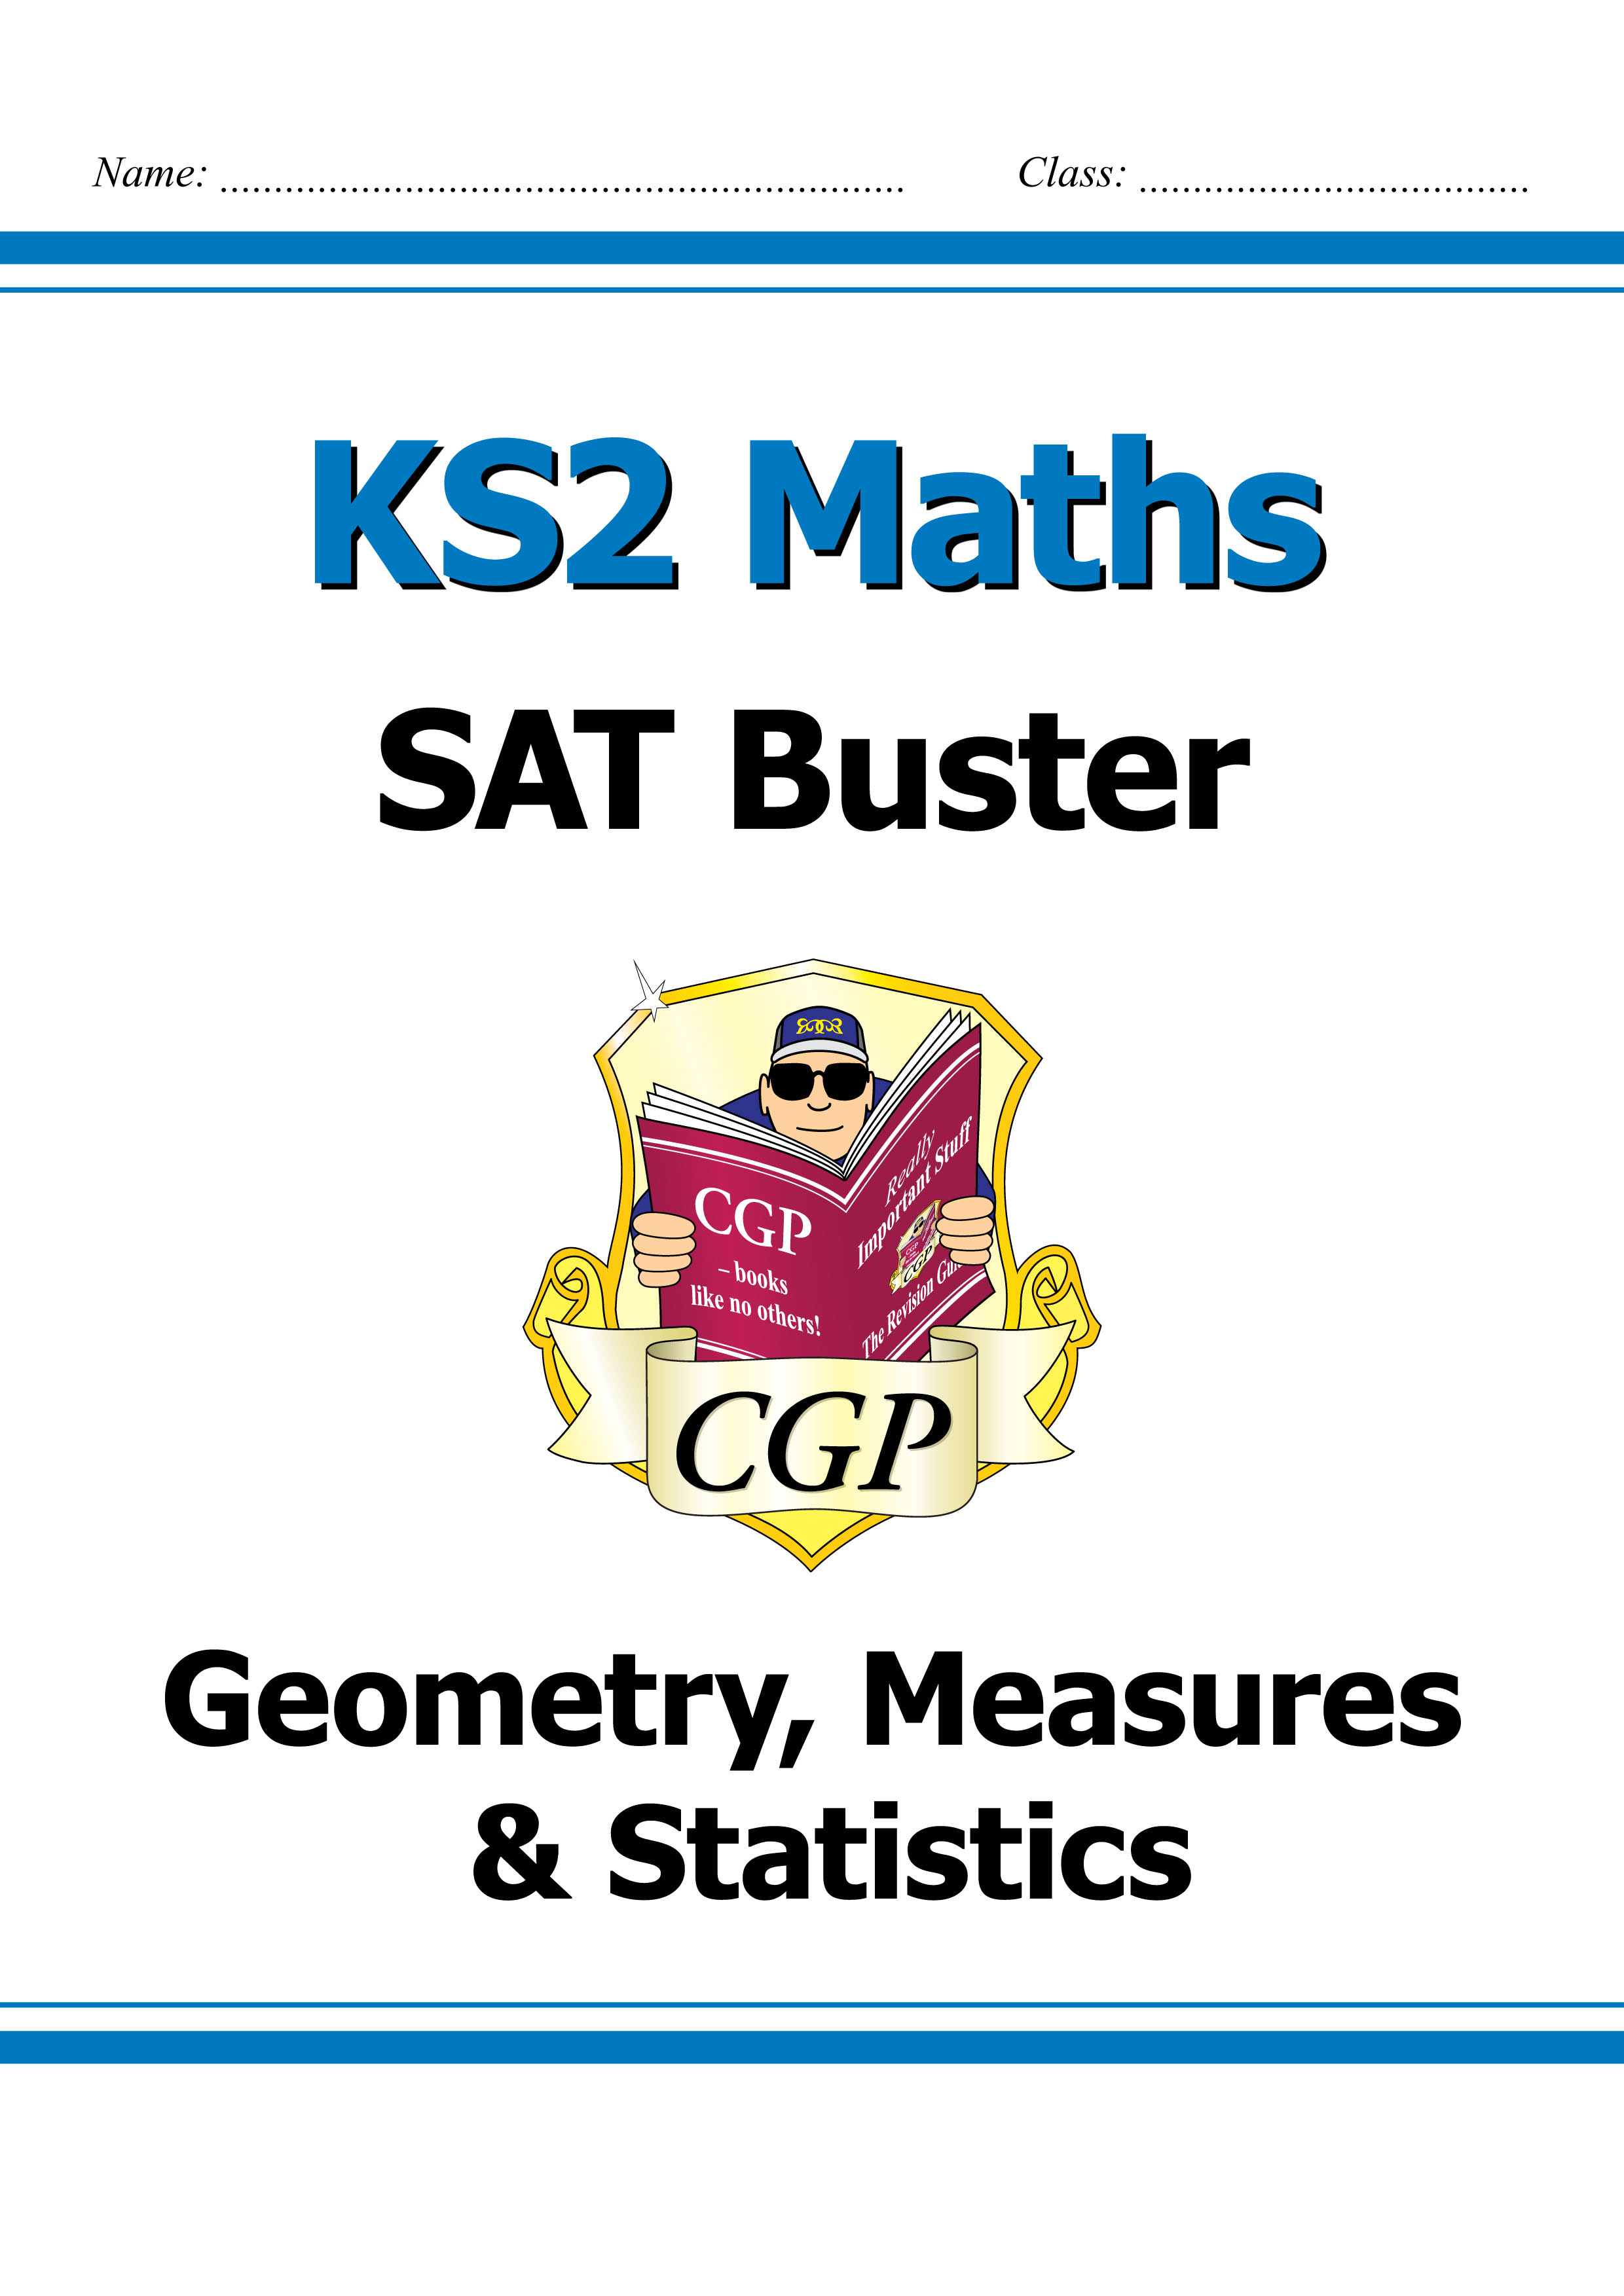 M6SMD23DK - KS2 Maths SAT Buster: Geometry, Measures & Statistics (for tests in 2018 and beyond)